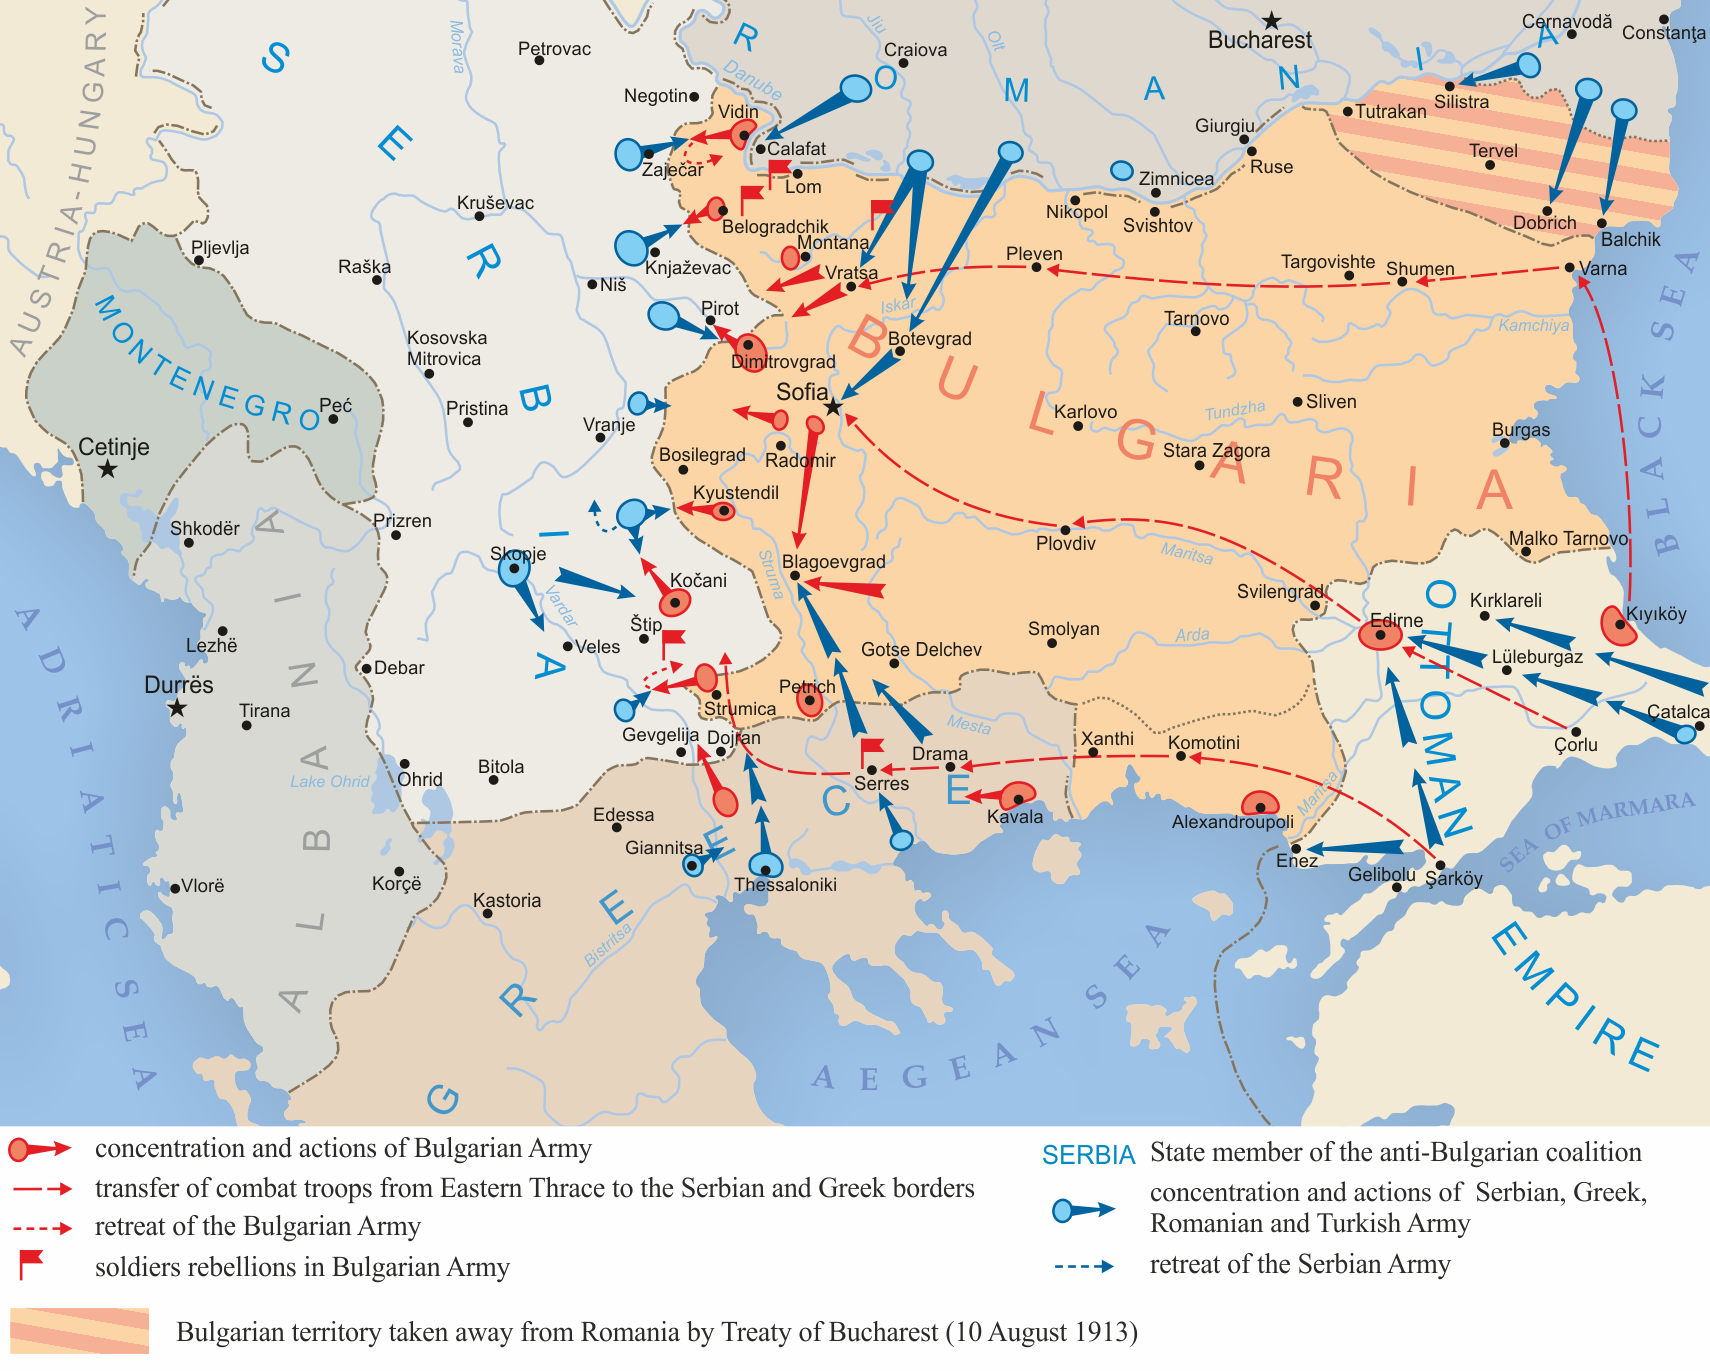 a history of the conflict in the balkans